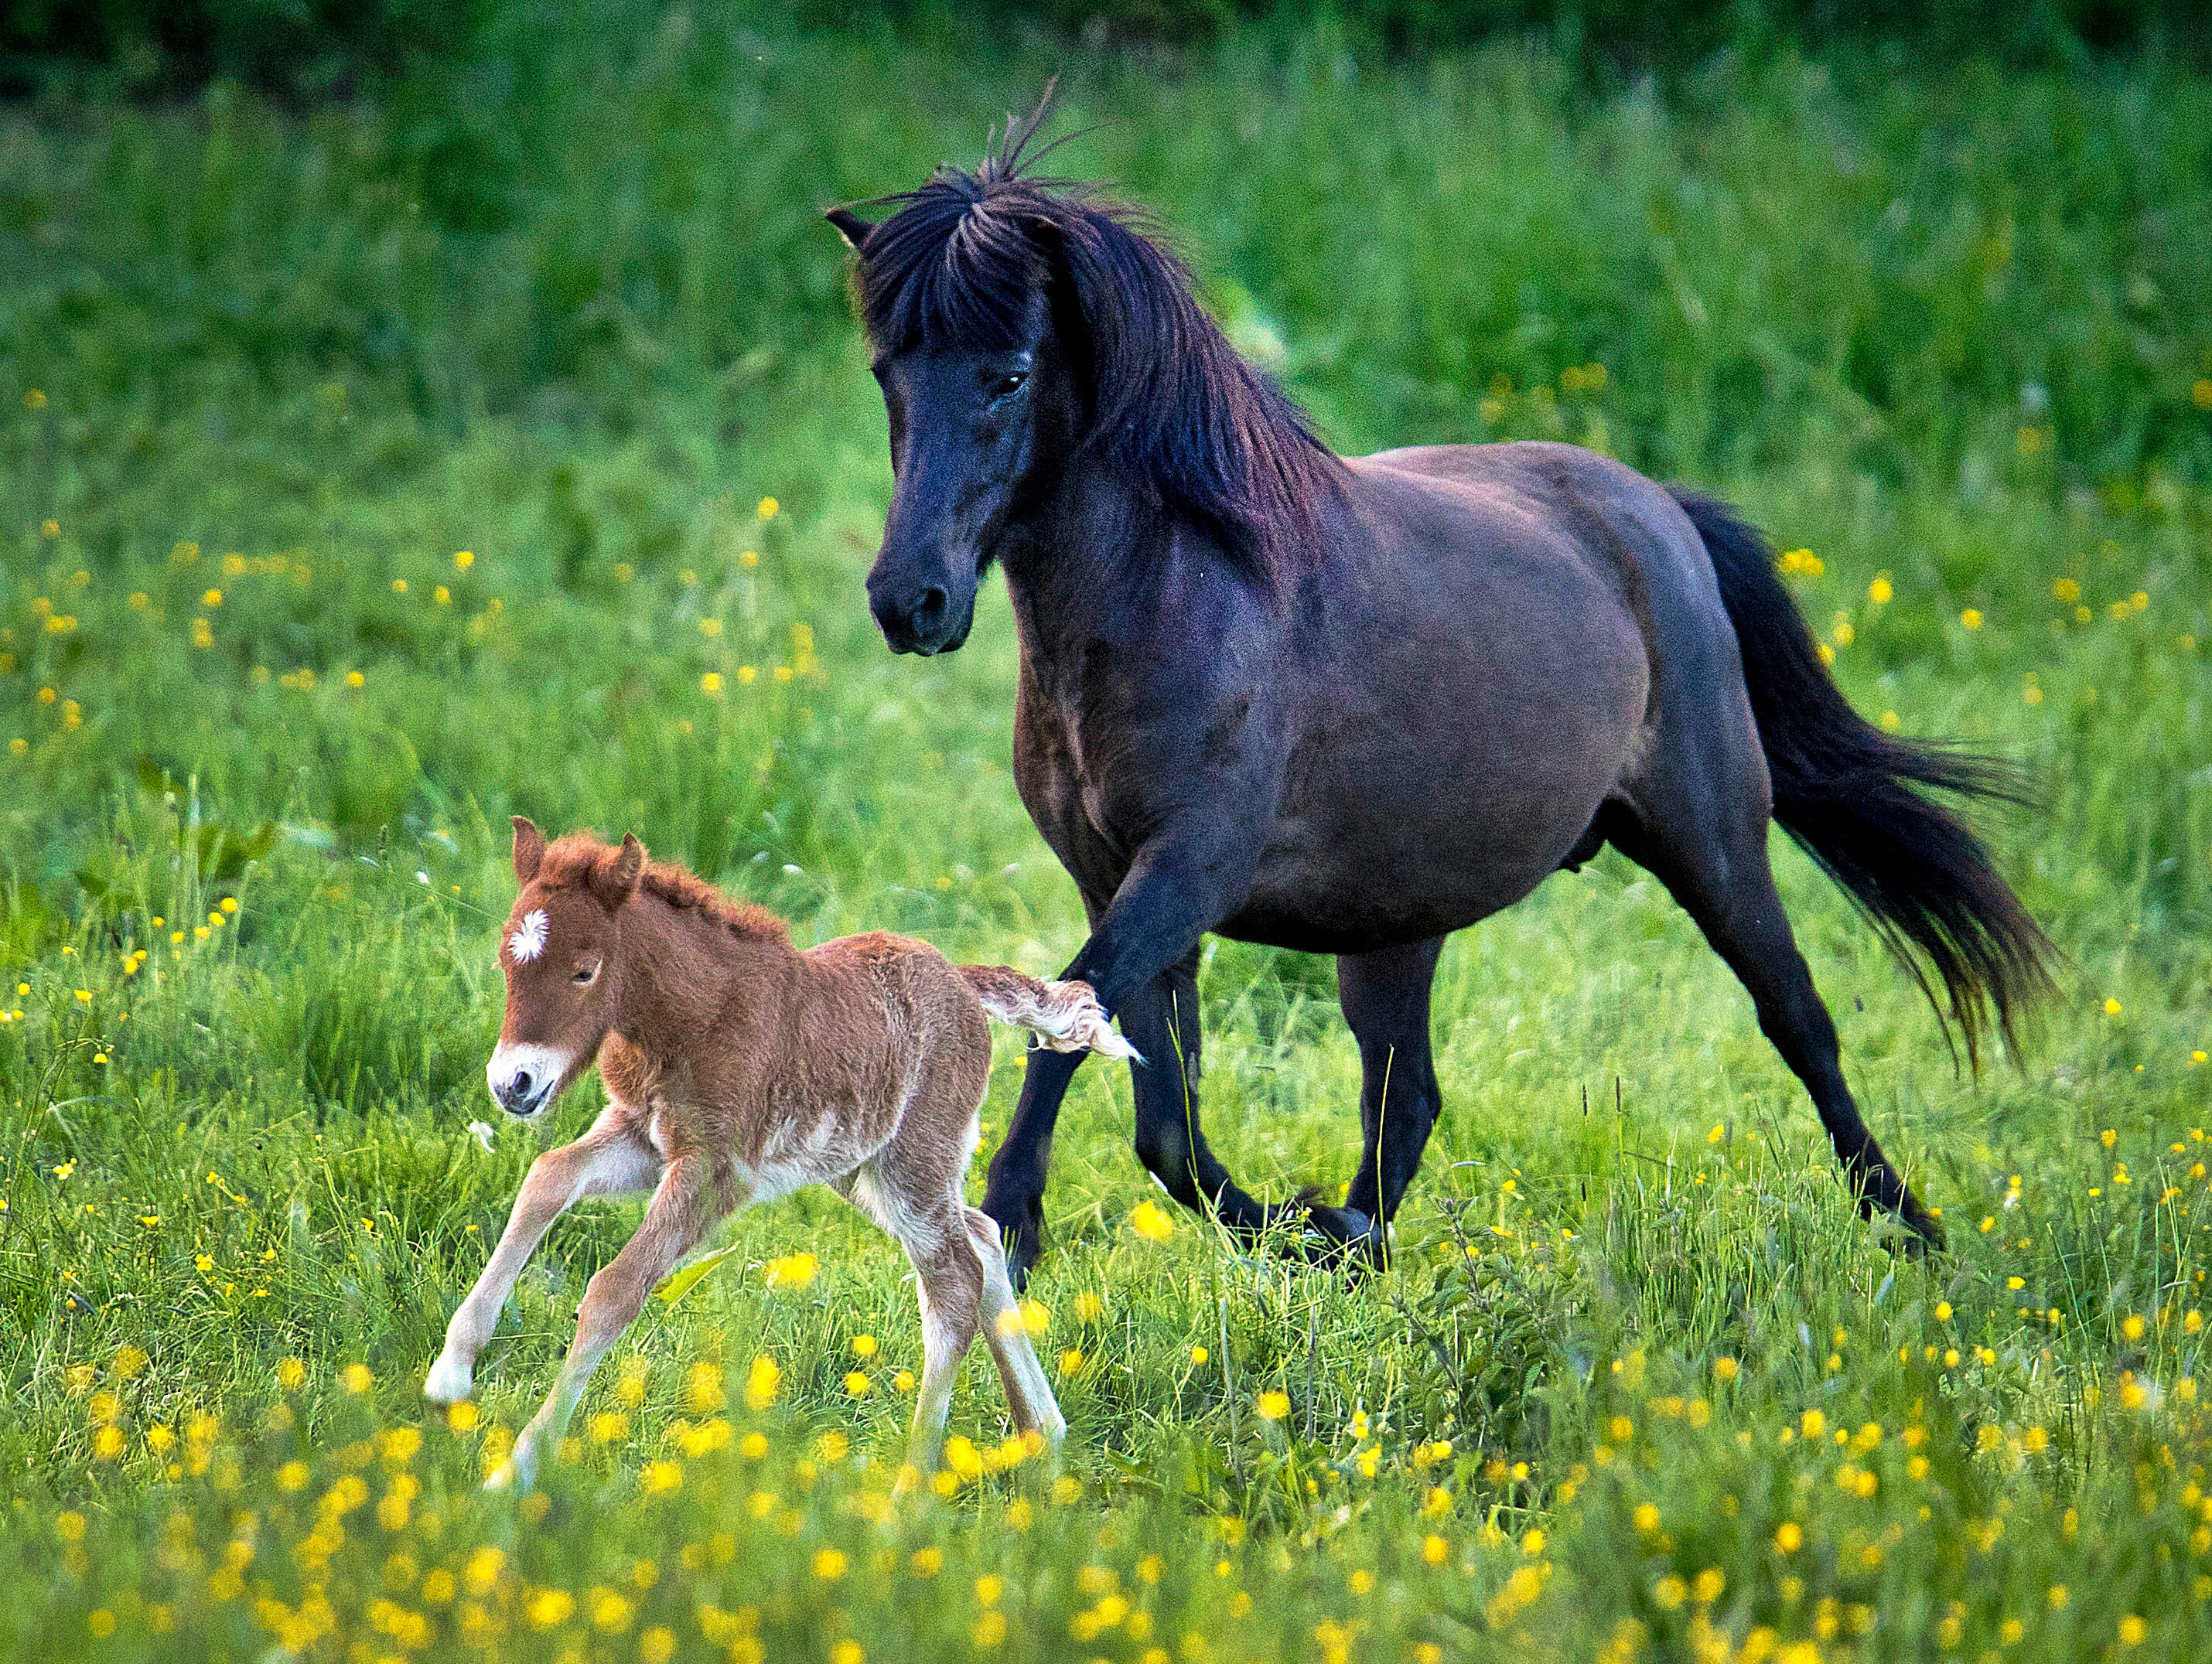 A 24-hours-old Iceland horse foal runs with its mother in their paddock in Wehrheim near Frankfurt, Germany, Sunday, May 12, 2019.